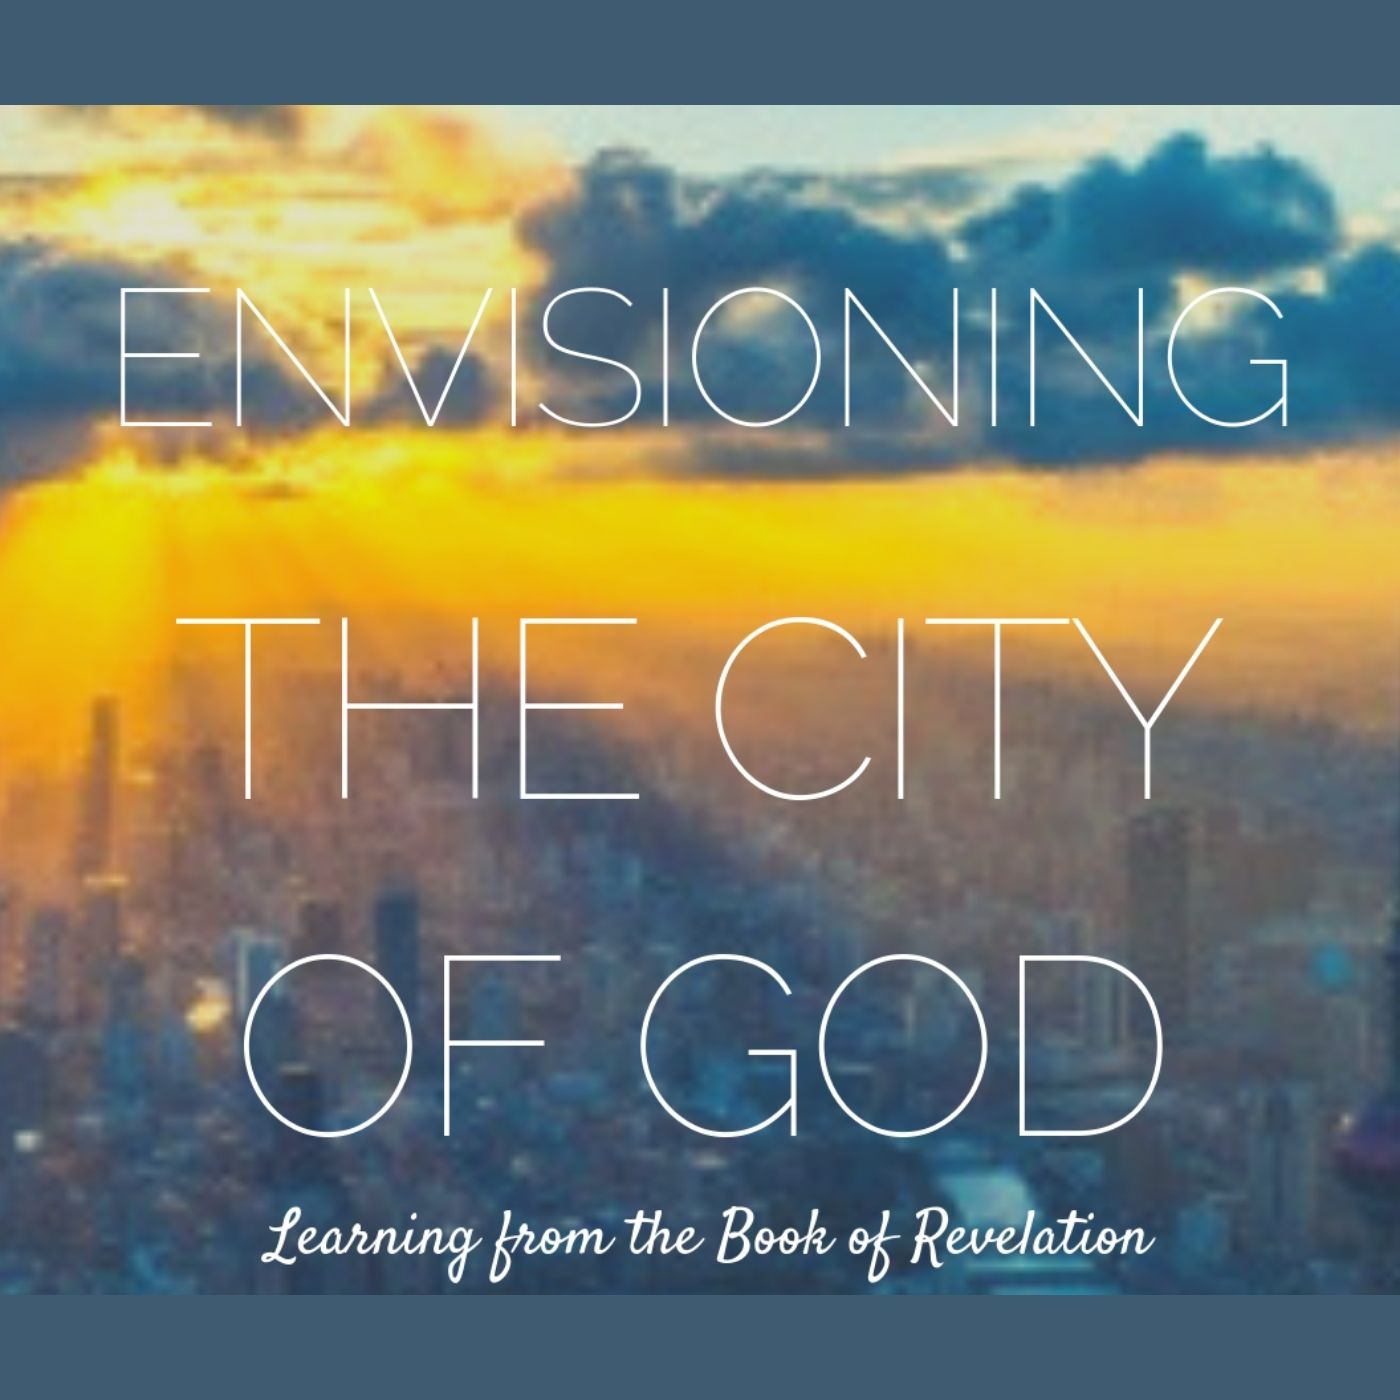 CD cover Envisioning the City of God.jpg